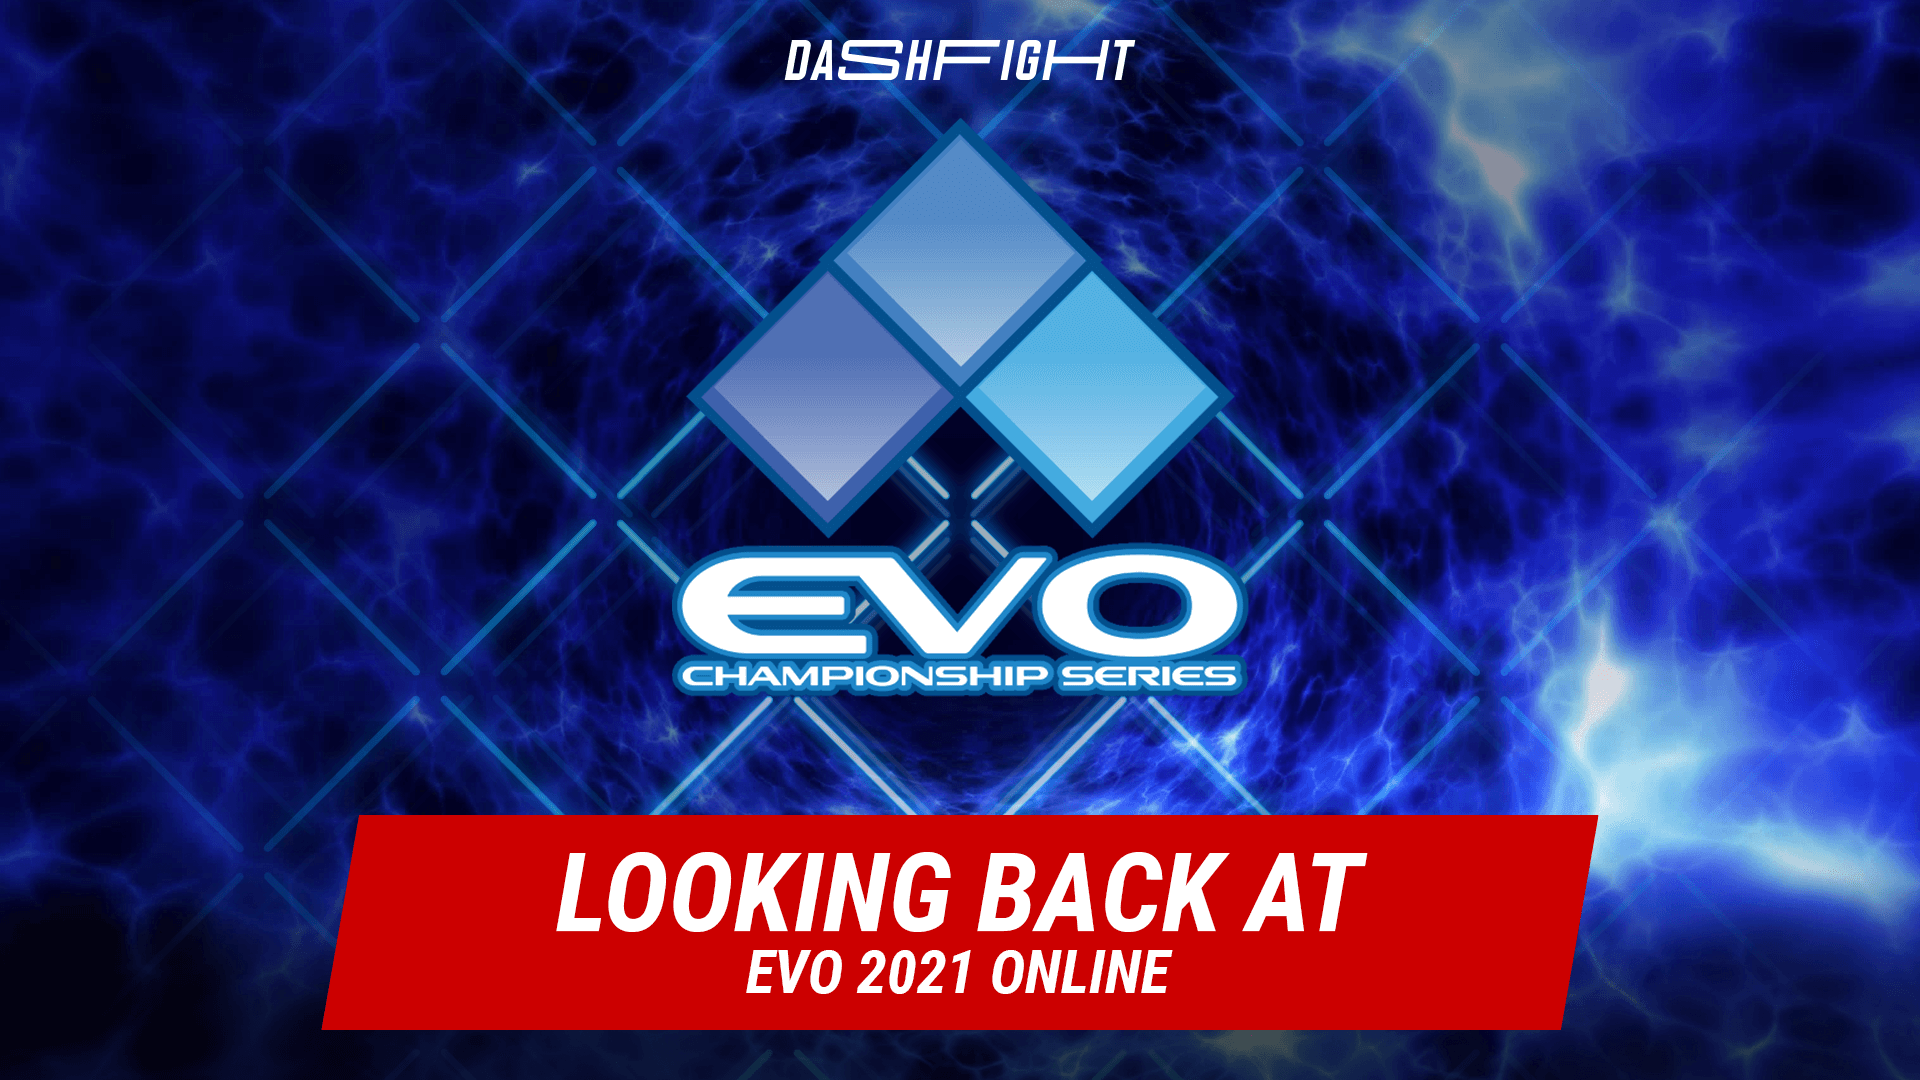 Looking Back at Evo 2021 Online